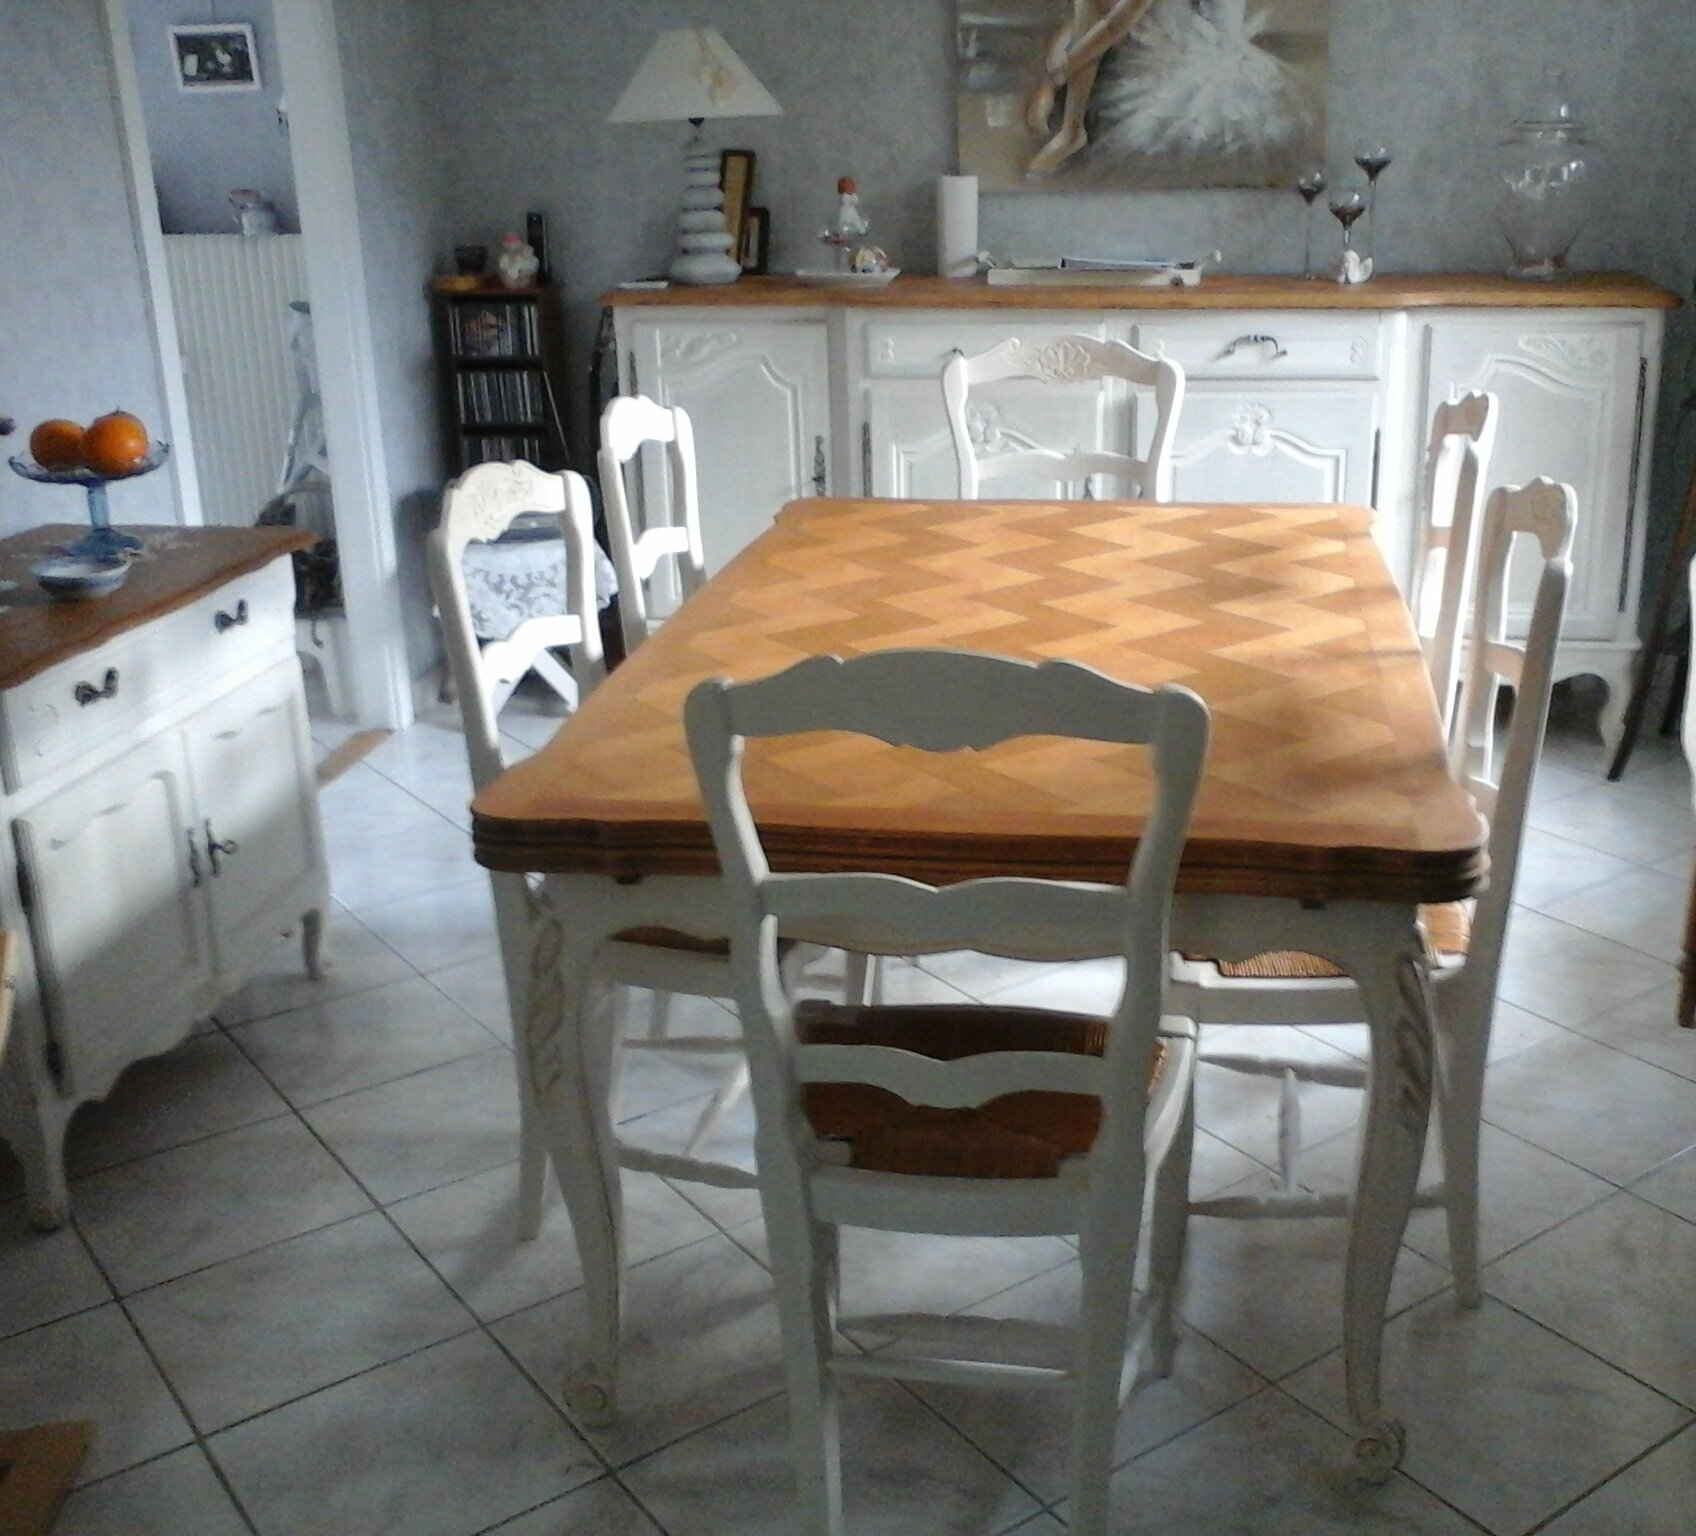 Relooker une table en ch ne ou merisier table monast re richelieu ou louis 15 pr s de nancy - Relooker un meuble en bois ...